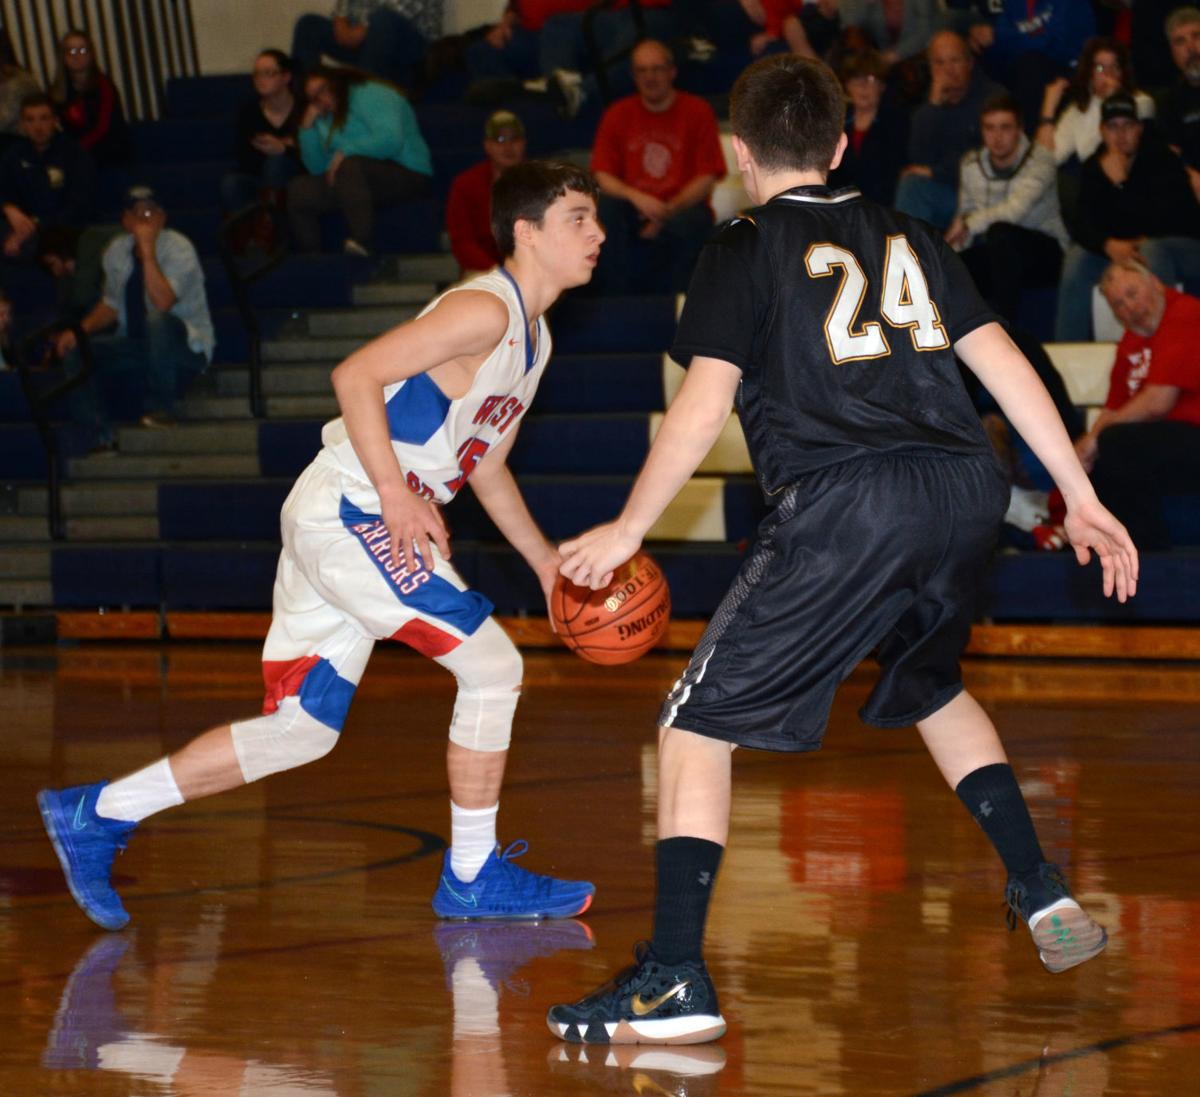 Sophomore Trenton Bellomy scored 18 points against the Black Knights